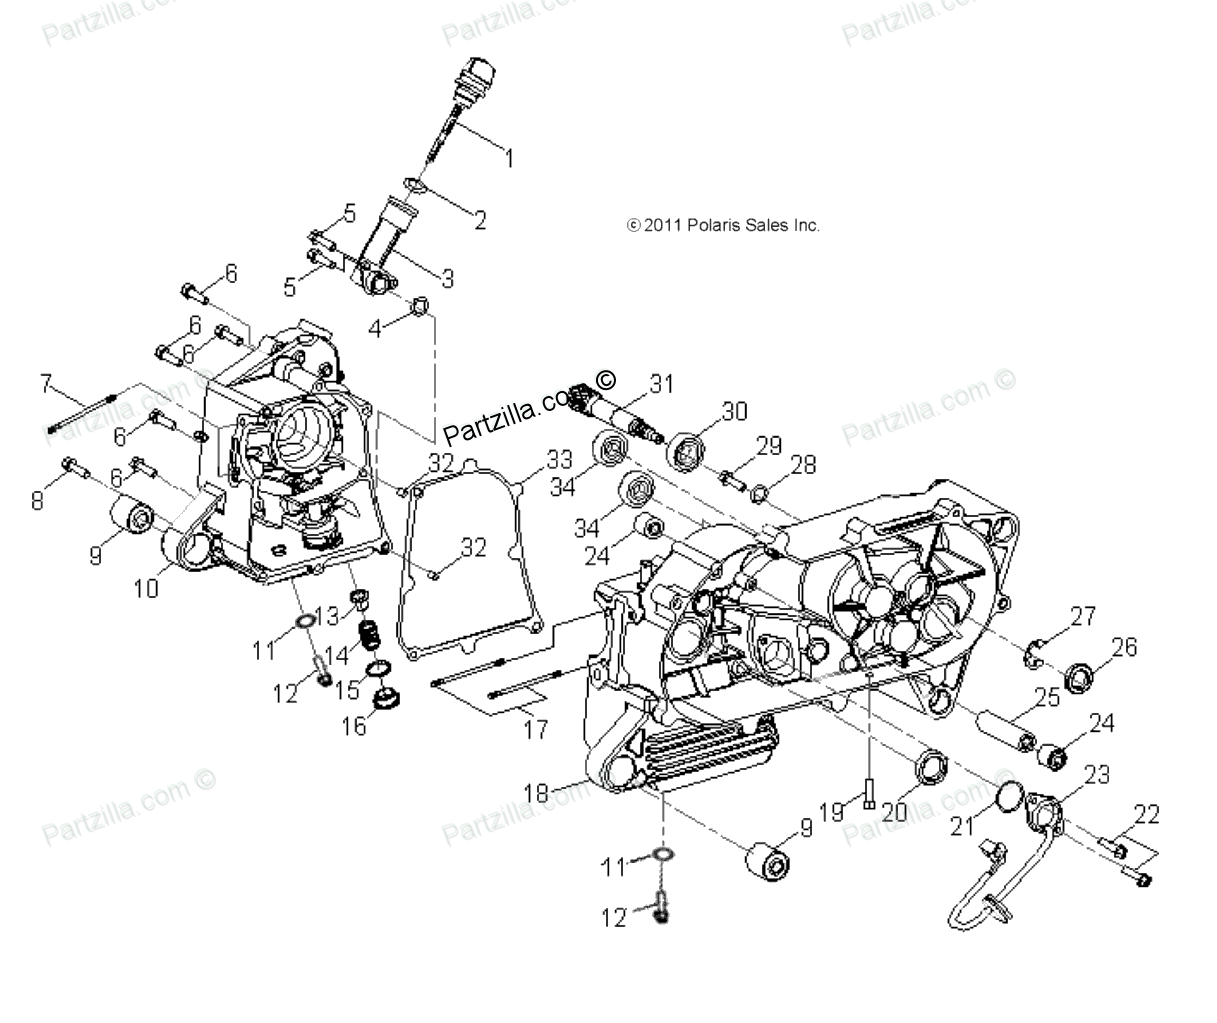 Polaris Outlaw 90 Wiring Diagram Engine Wiring Diagram